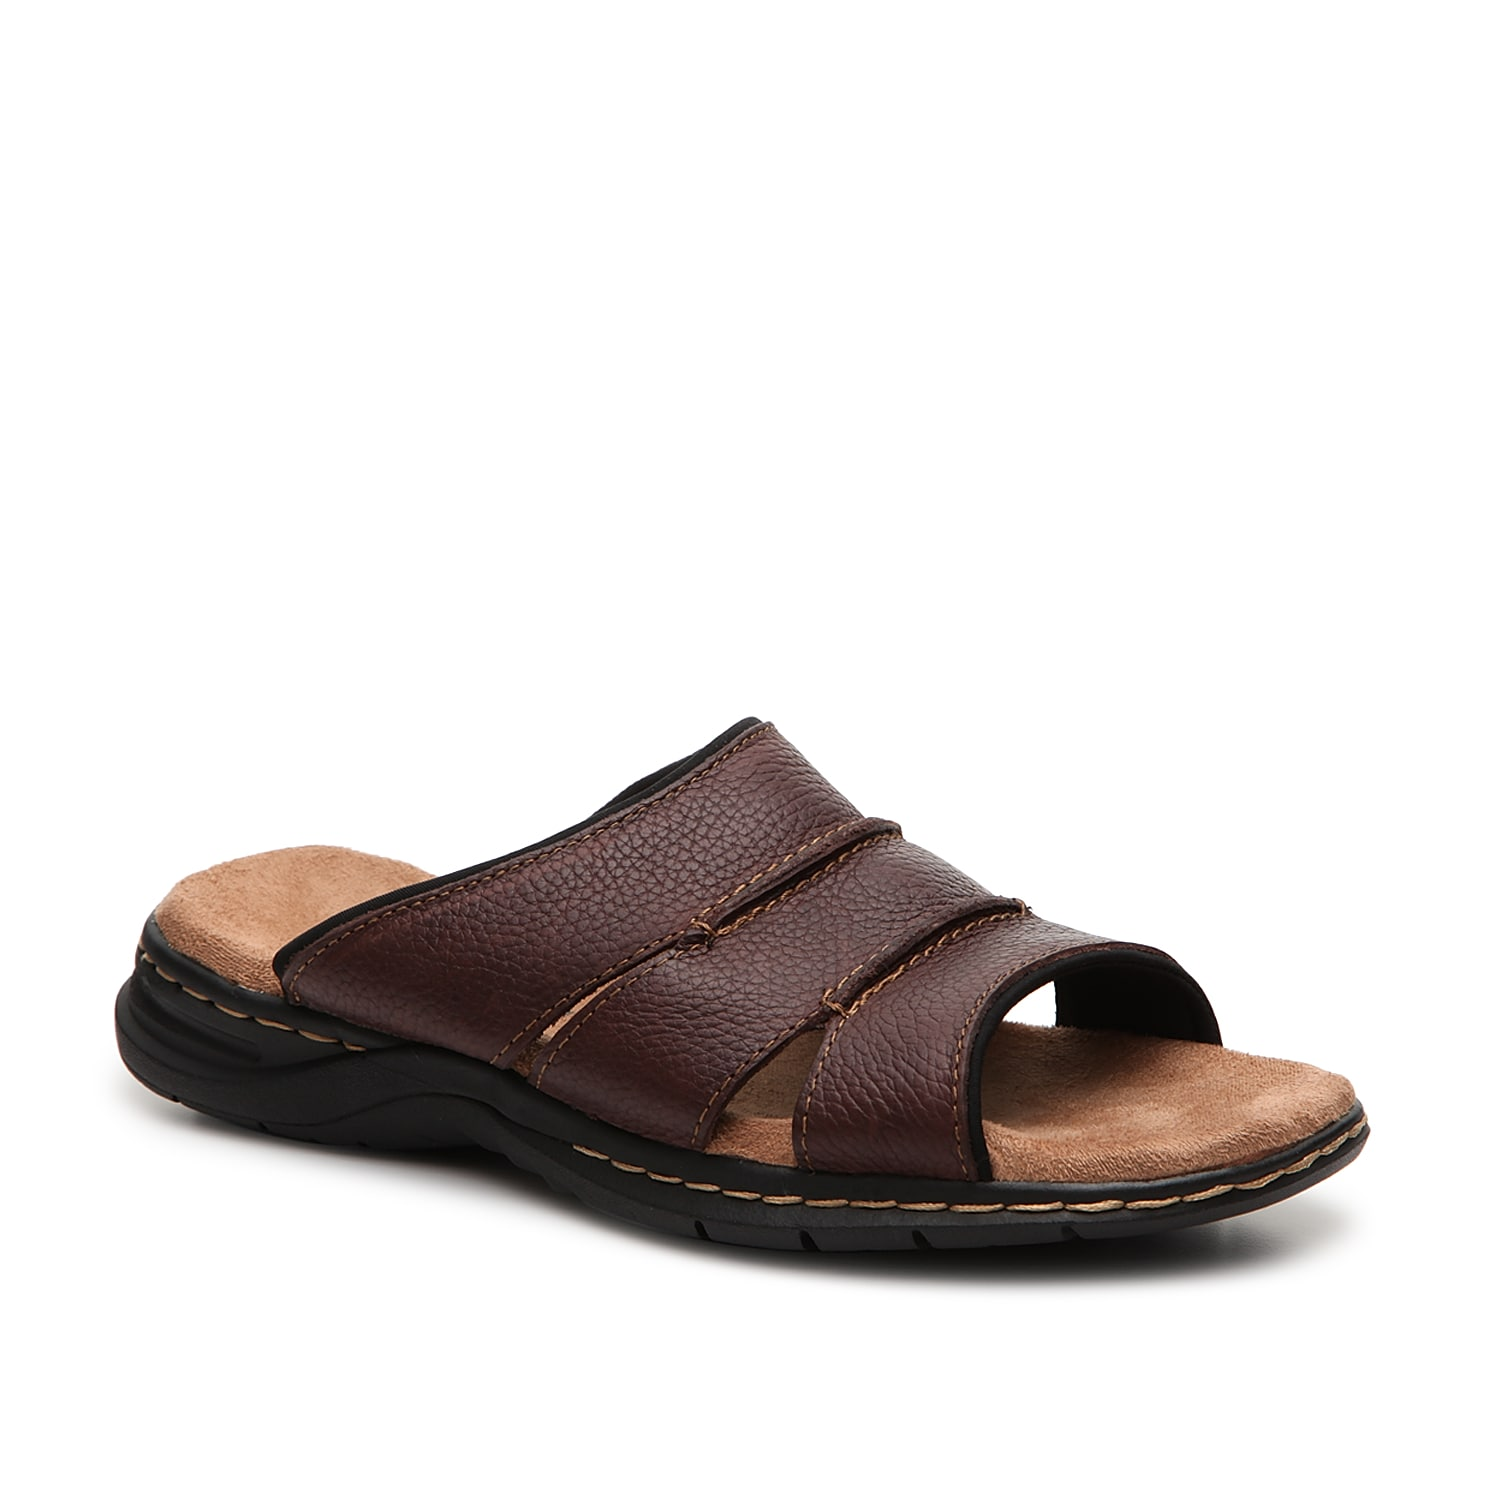 If you\\\'re looking for a simple, casual leather sandal that\\\'s high on comfort and style, the Gordon slide sandal with comfort footbed from Dr. Scholl\\\'s is it.